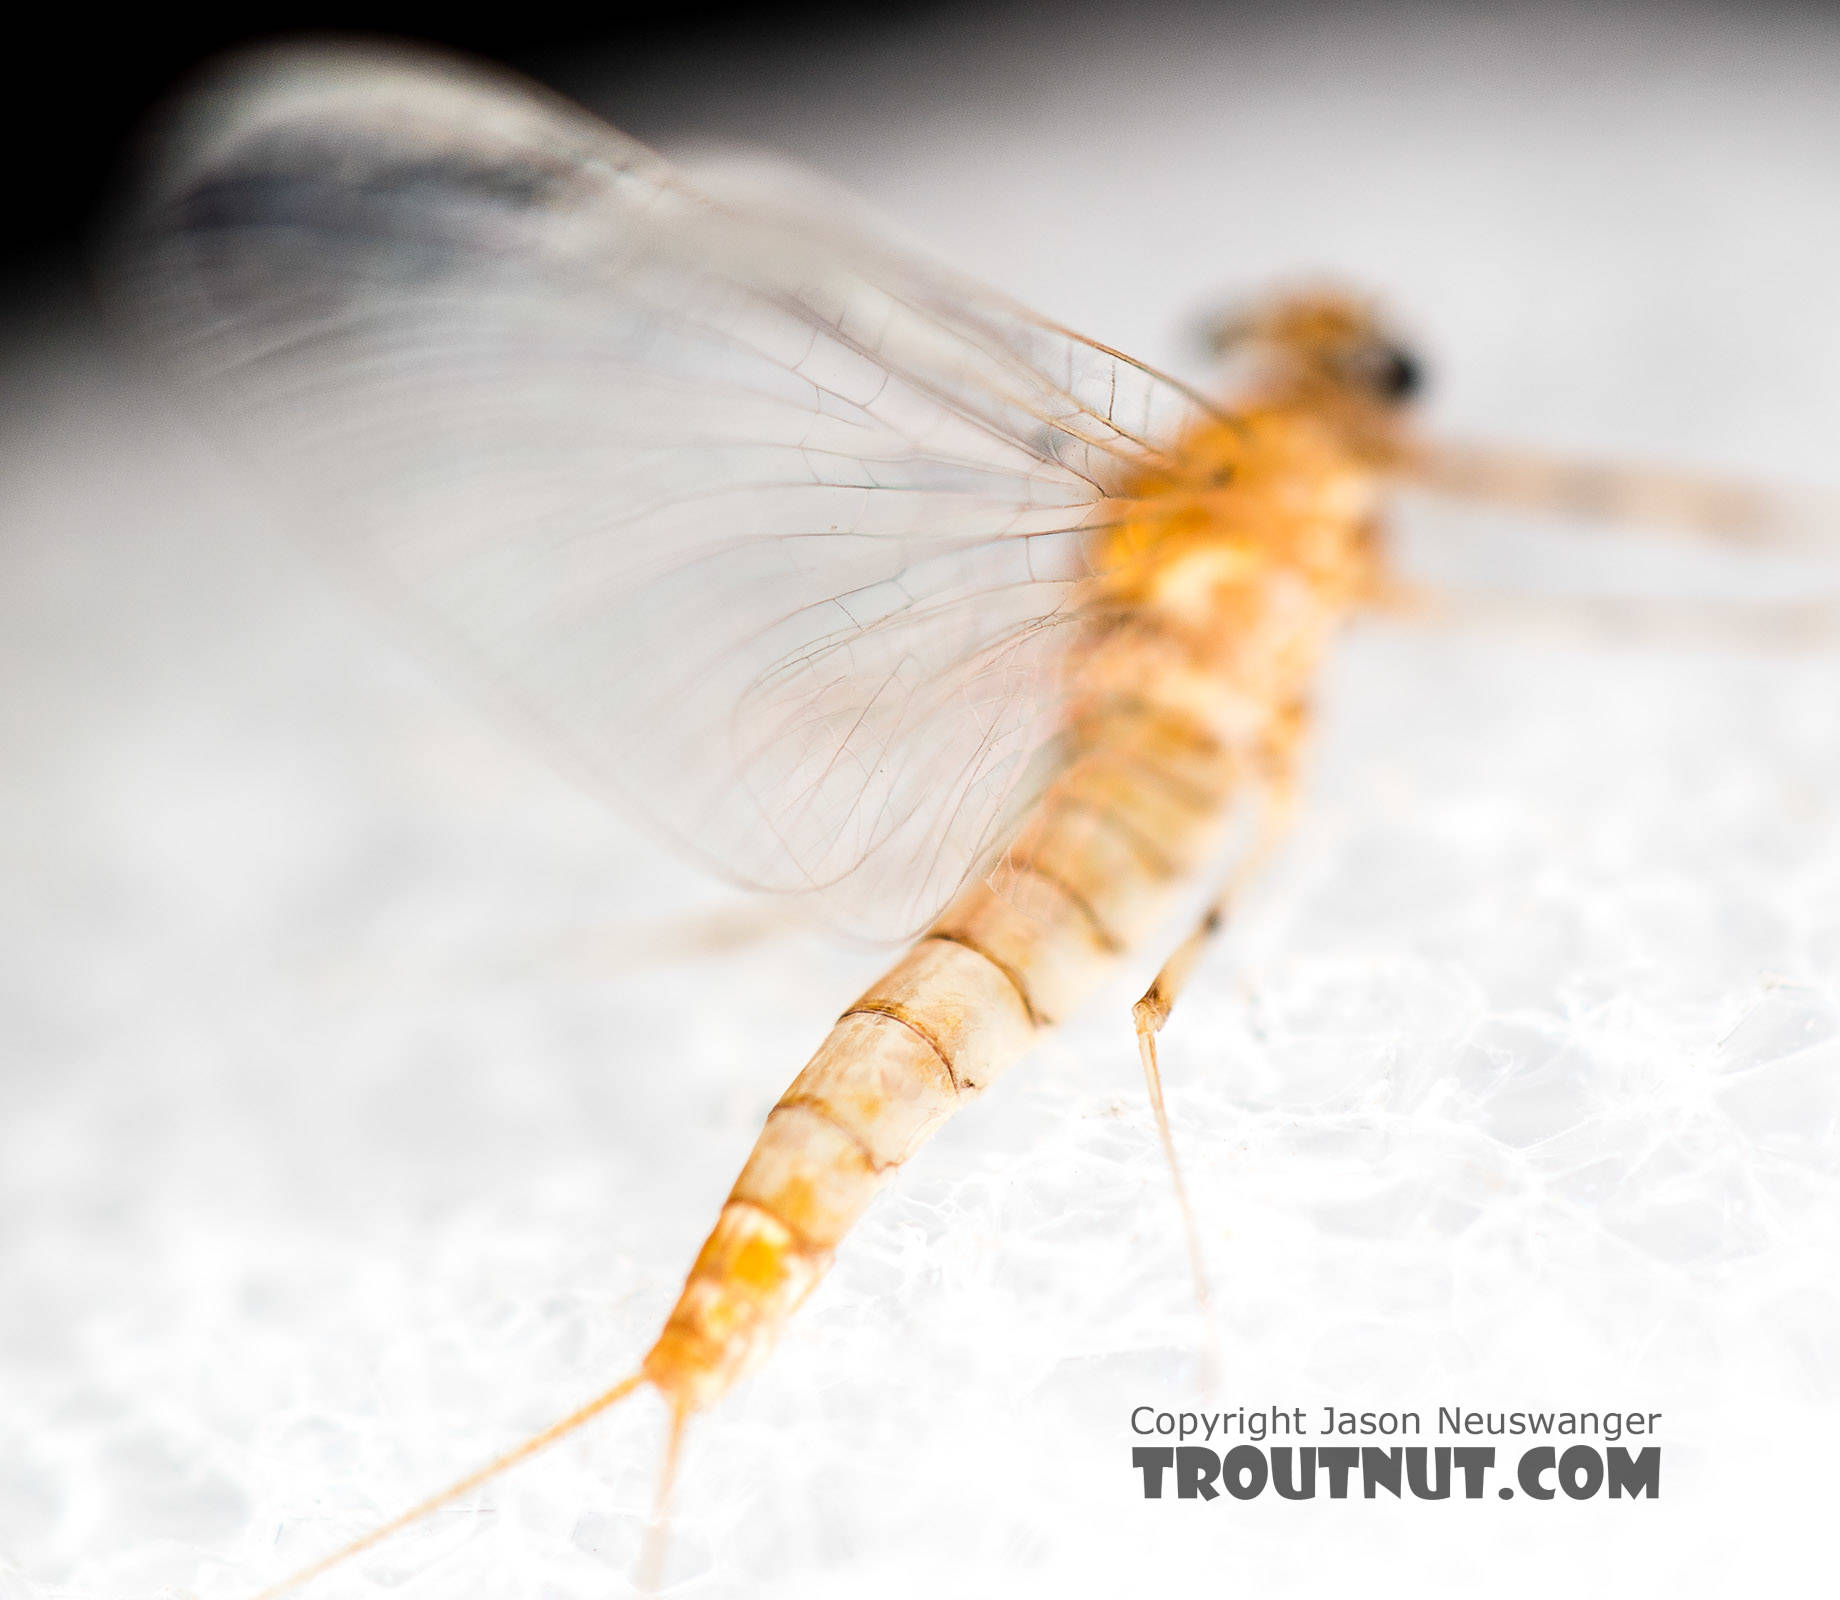 Female Epeorus albertae (Pink Lady) Mayfly Spinner from the North Fork Stillaguamish River in Washington